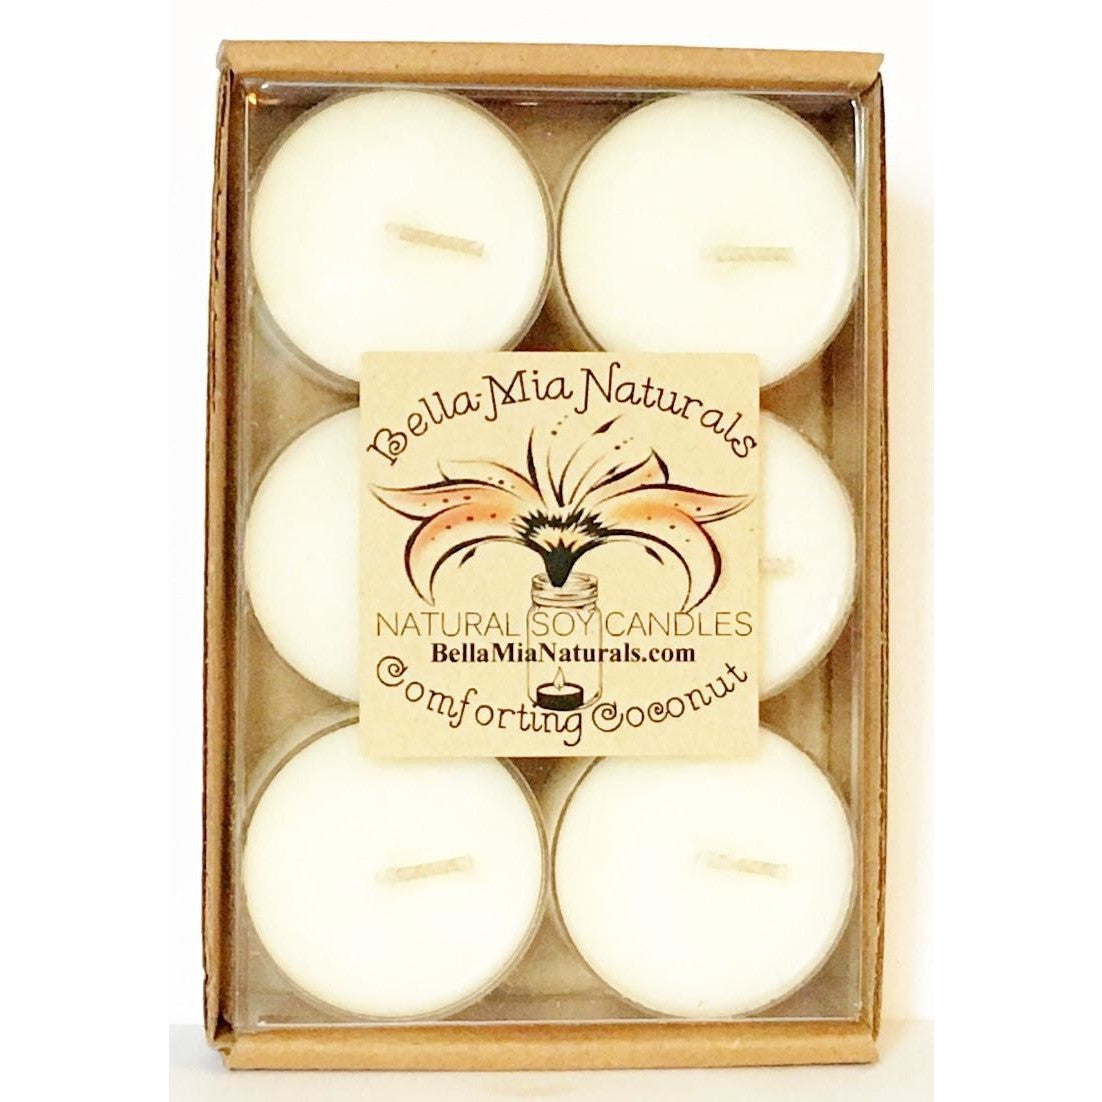 Comforting Coconut Natural Hand Poured Soy Candles - Tealight-6 Pack - Bella-Mia Naturals All Natural Soy Candles & Lip Balms - 3